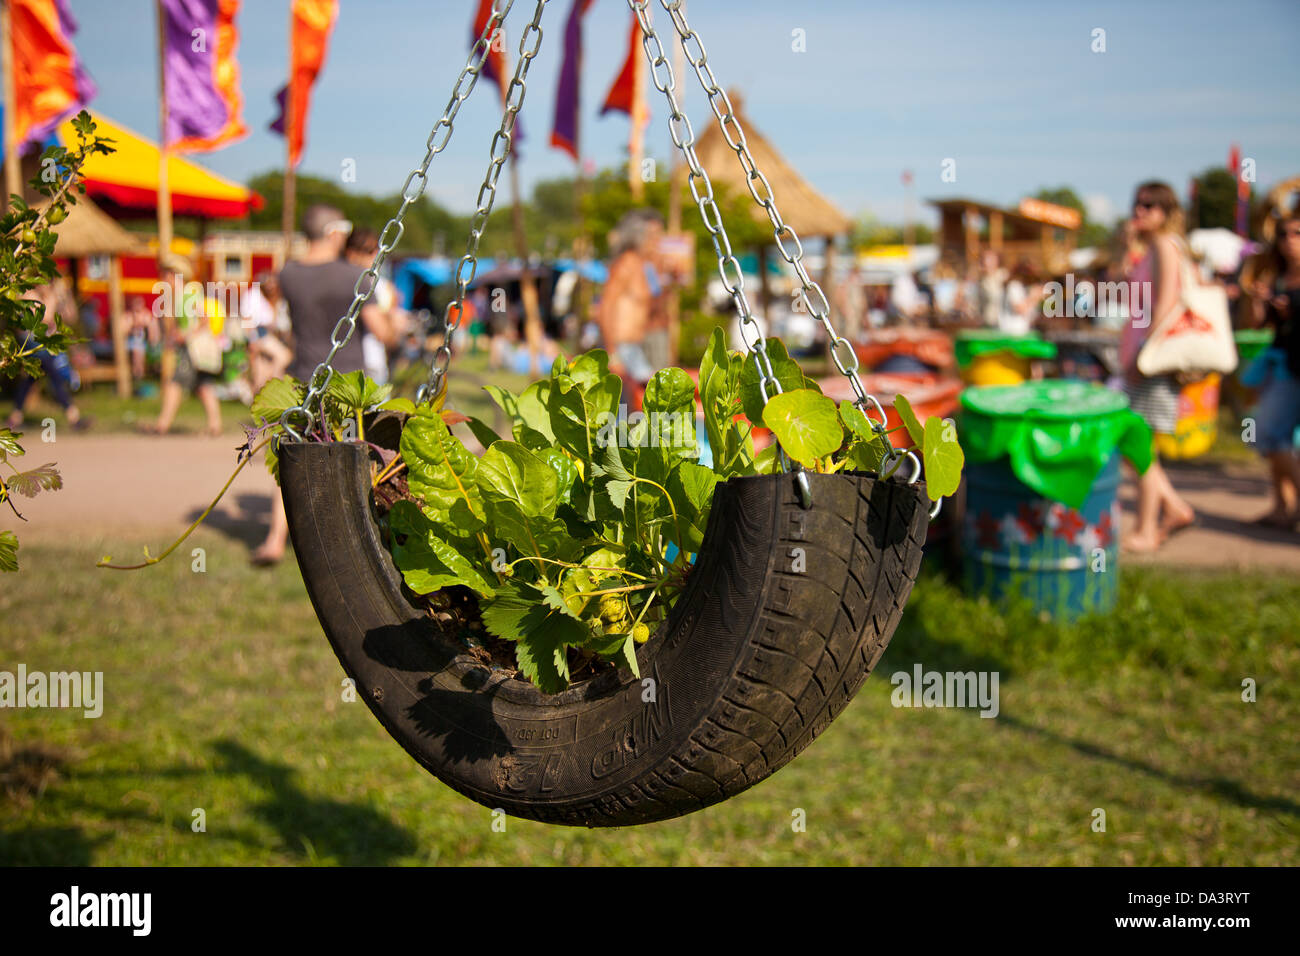 Recycled Tyre Stock Photos Recycled Tyre Stock Images Alamy